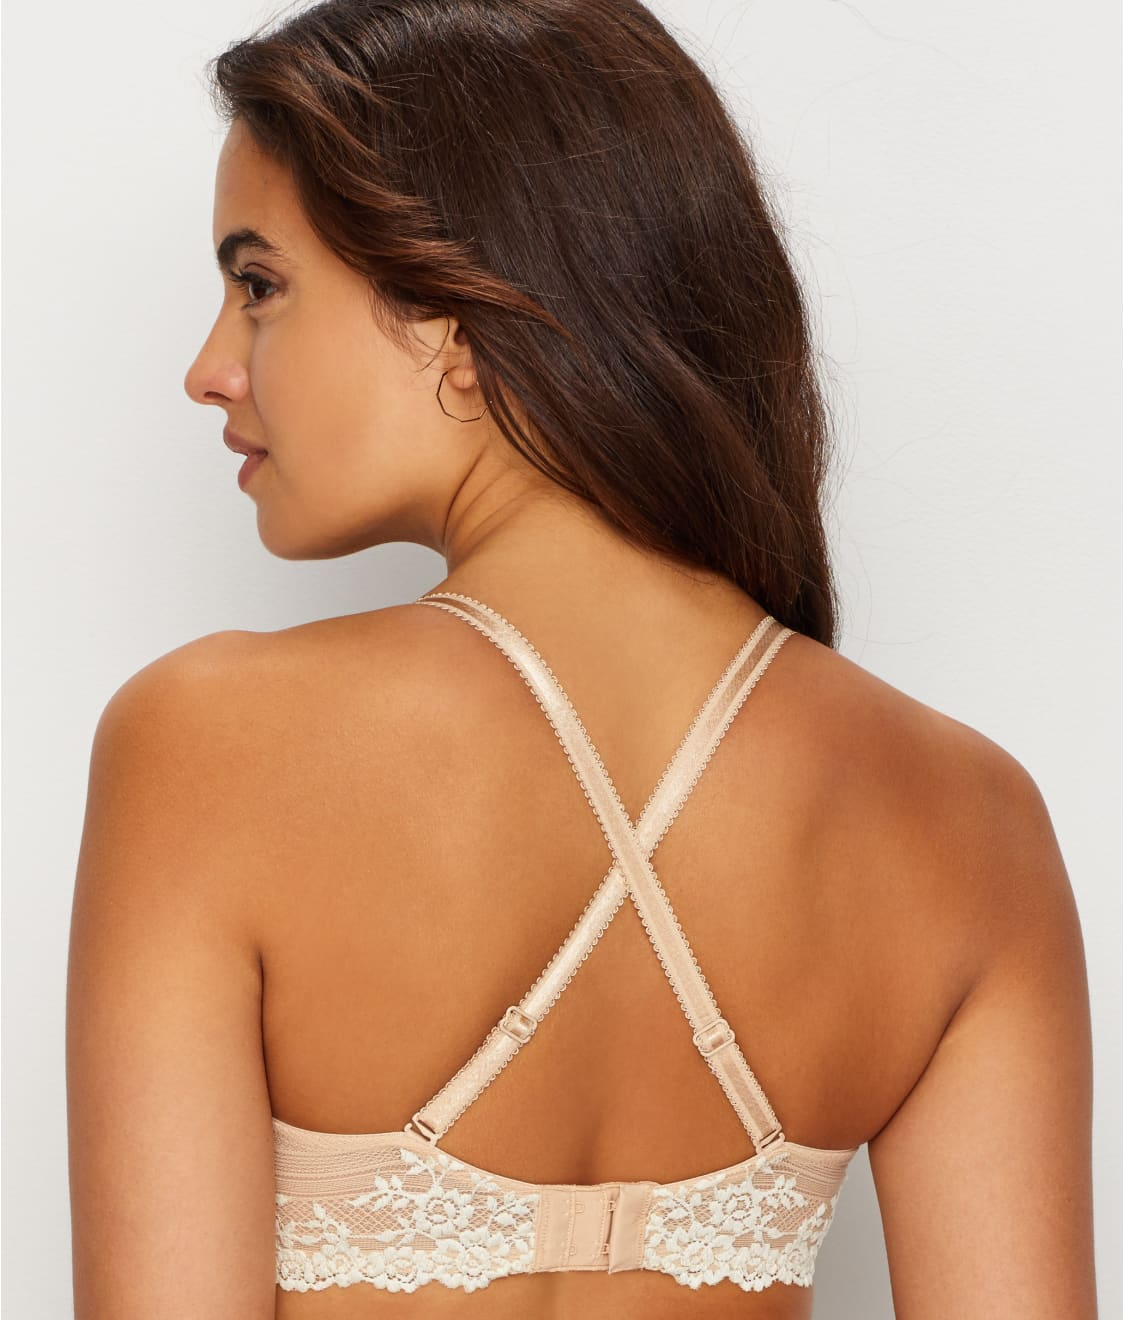 6027c0bccdb1d See Embrace Lace™ Plunge Bra in Sand   Ivory